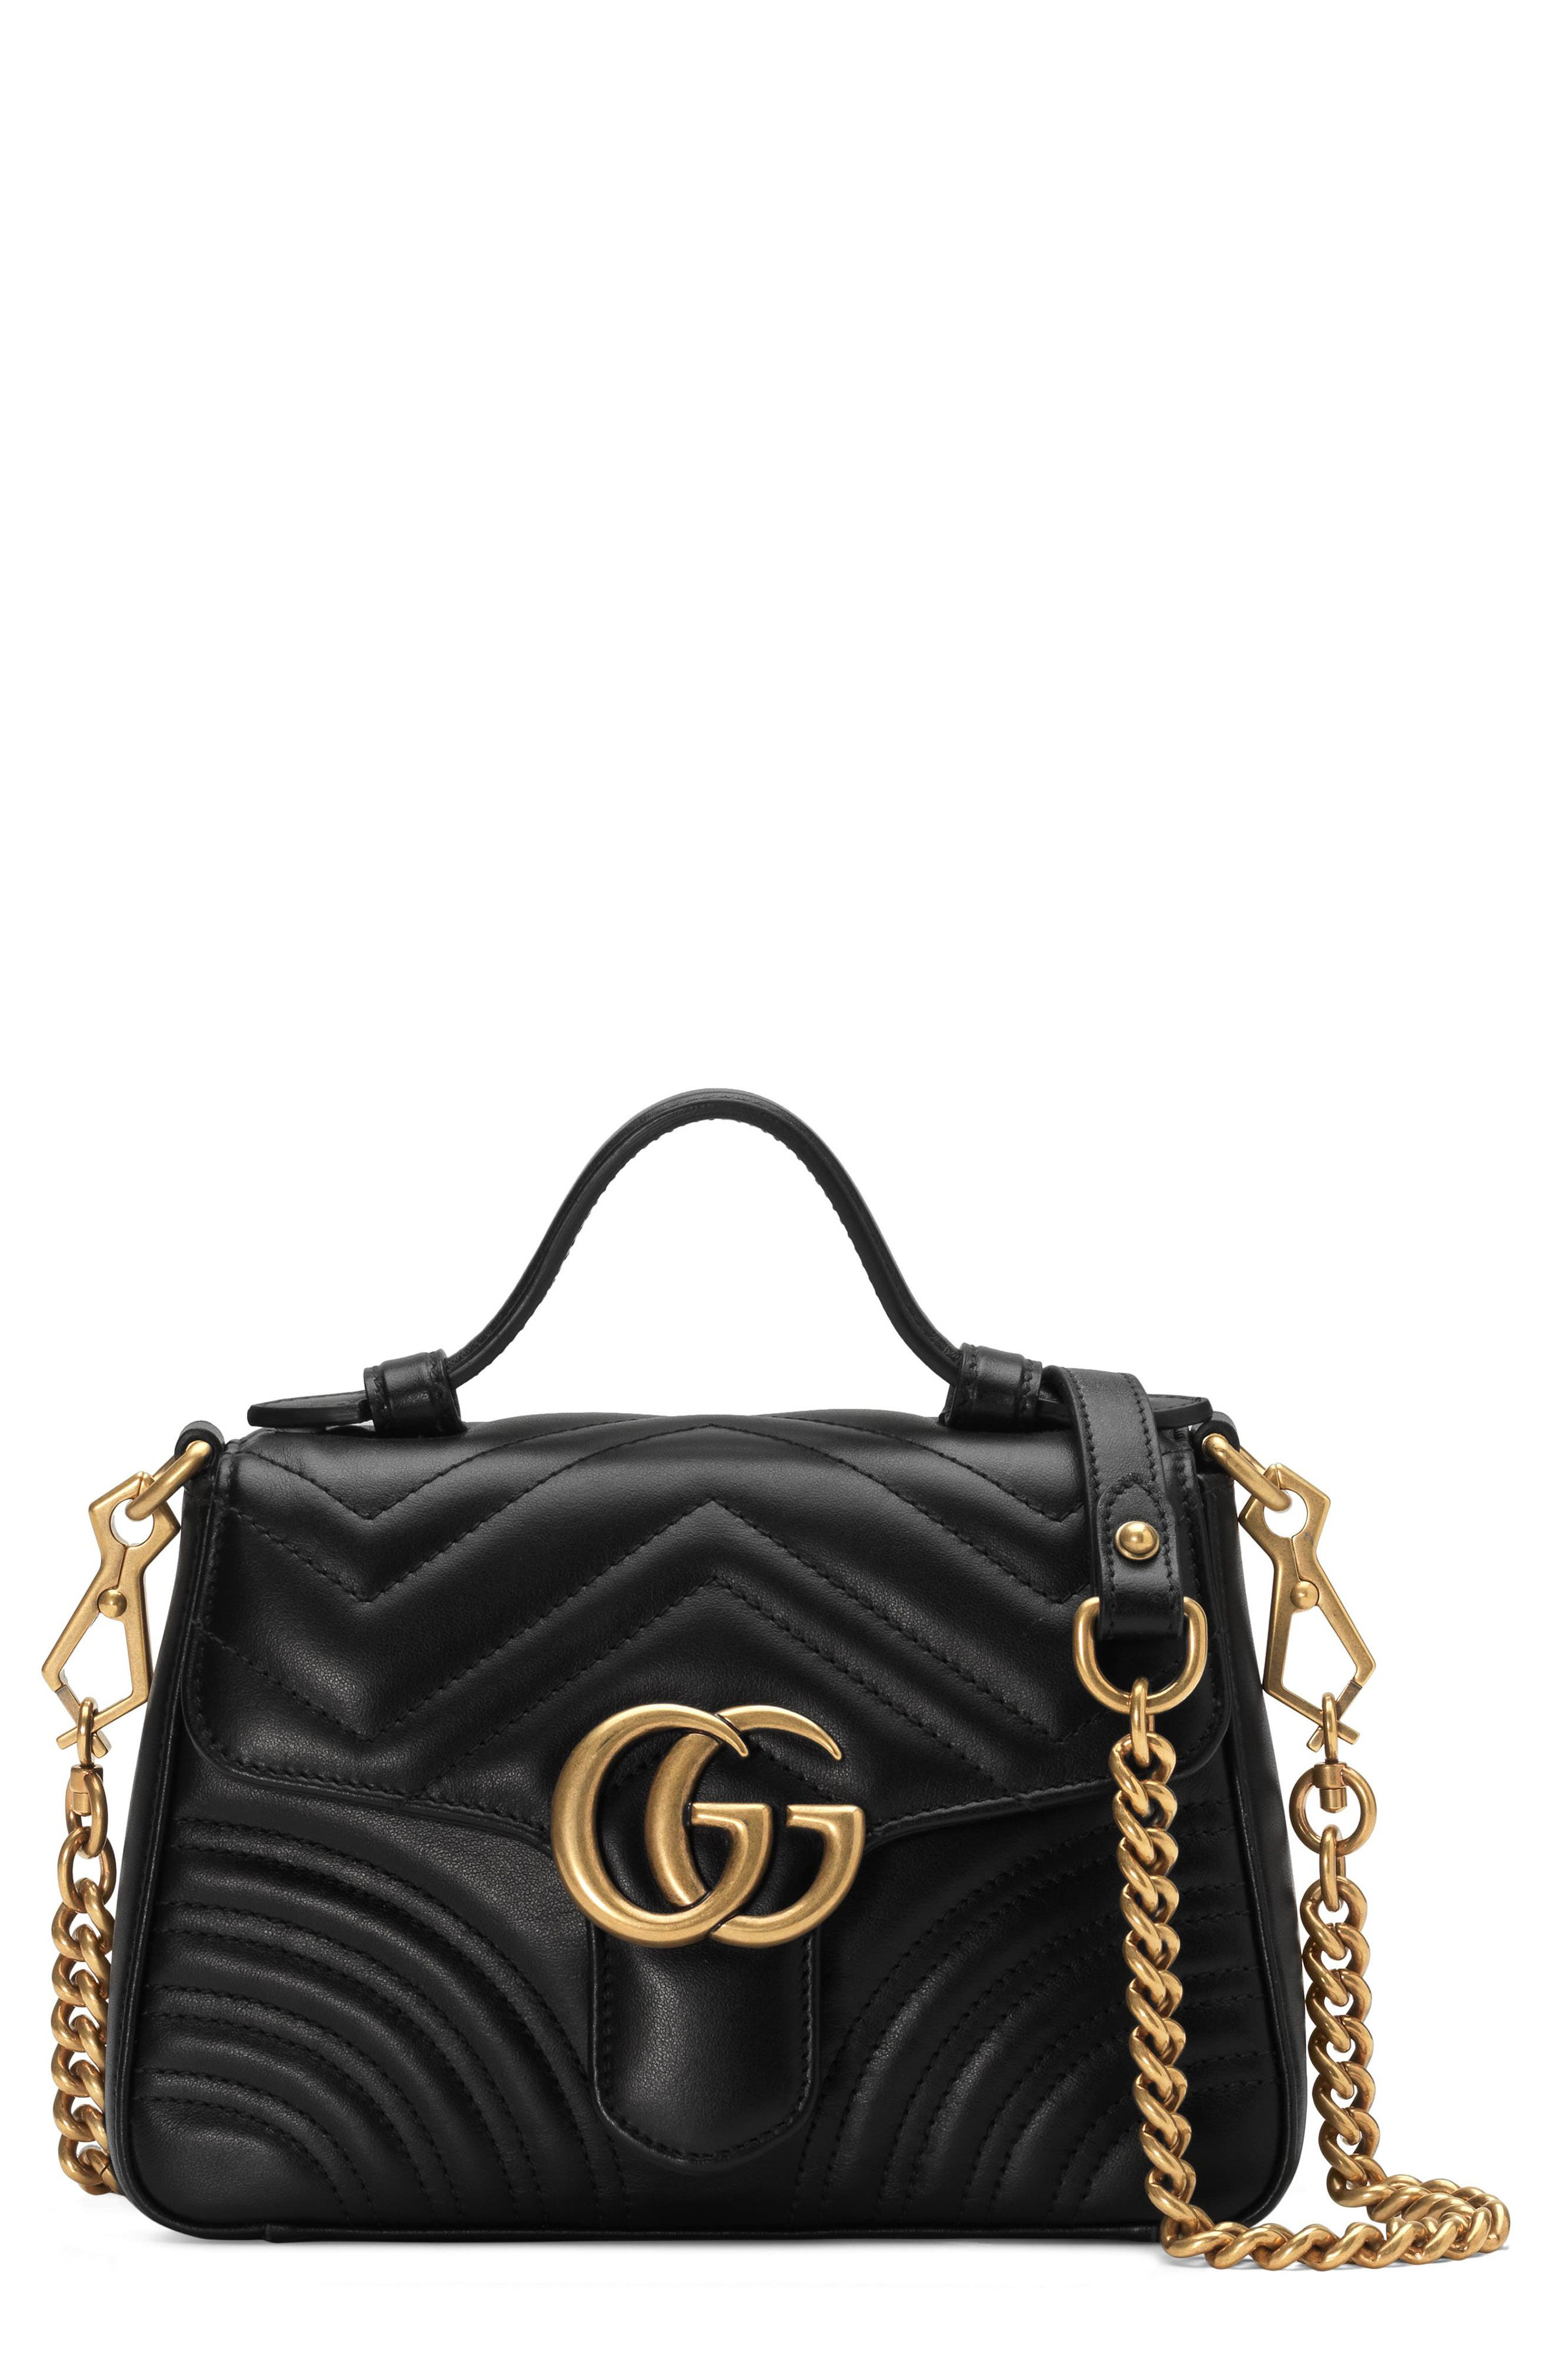 Marmont 2.0 Leather Top Handle Bag,                         Main,                         color, NERO